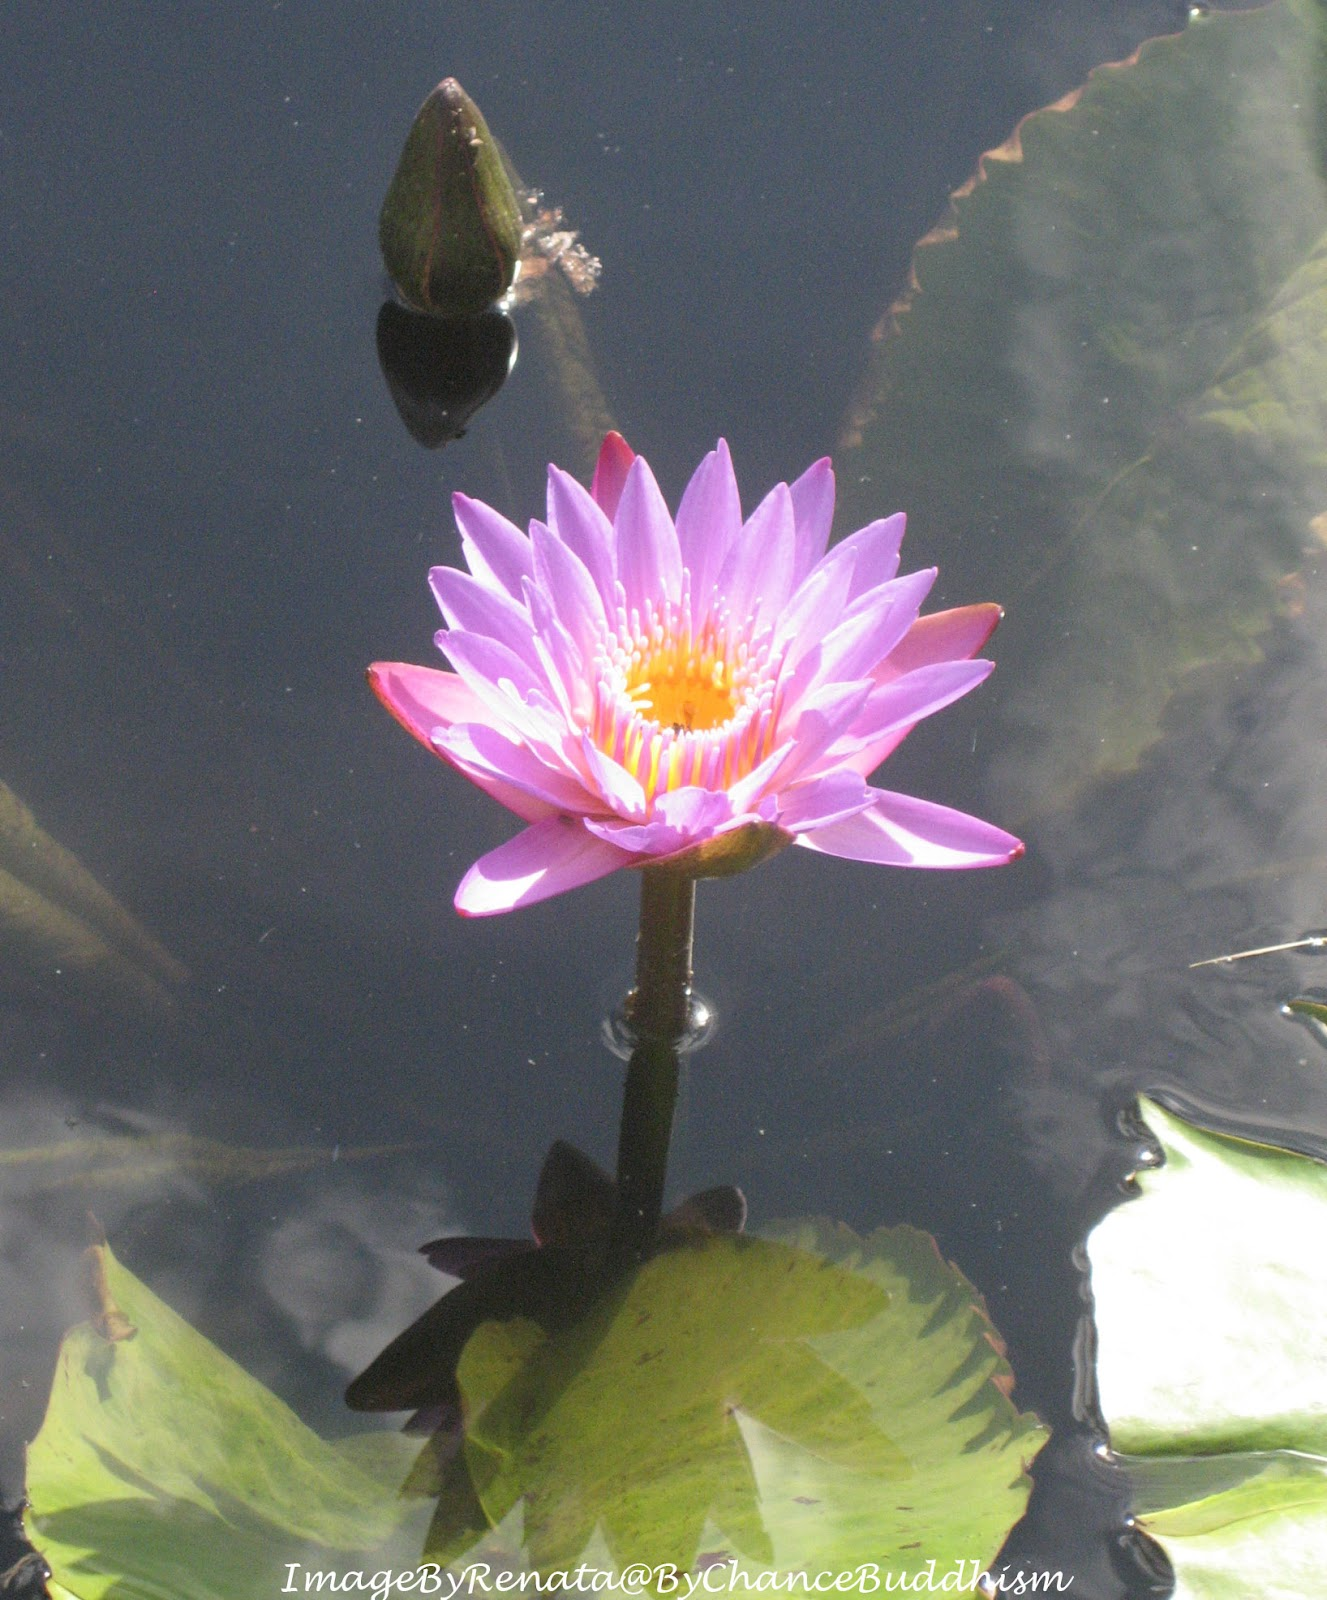 Bychancebuddhism A Lotus For You